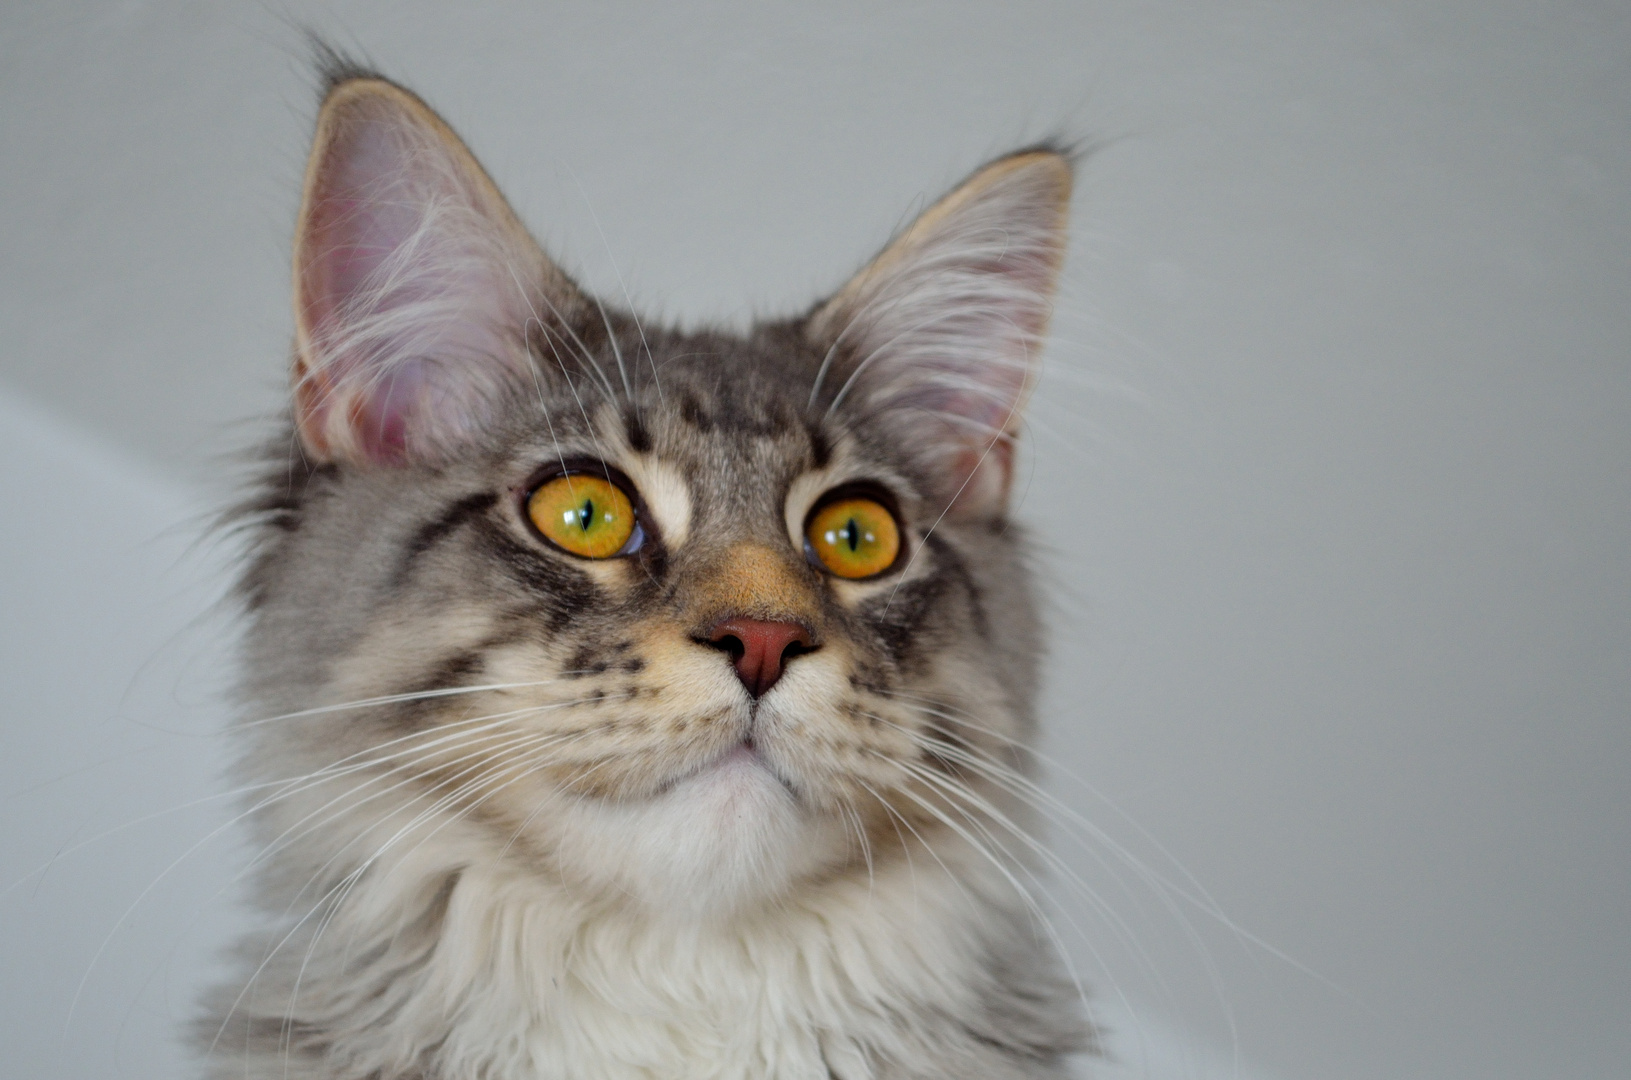 Unser Maine Coon Kater Nino........